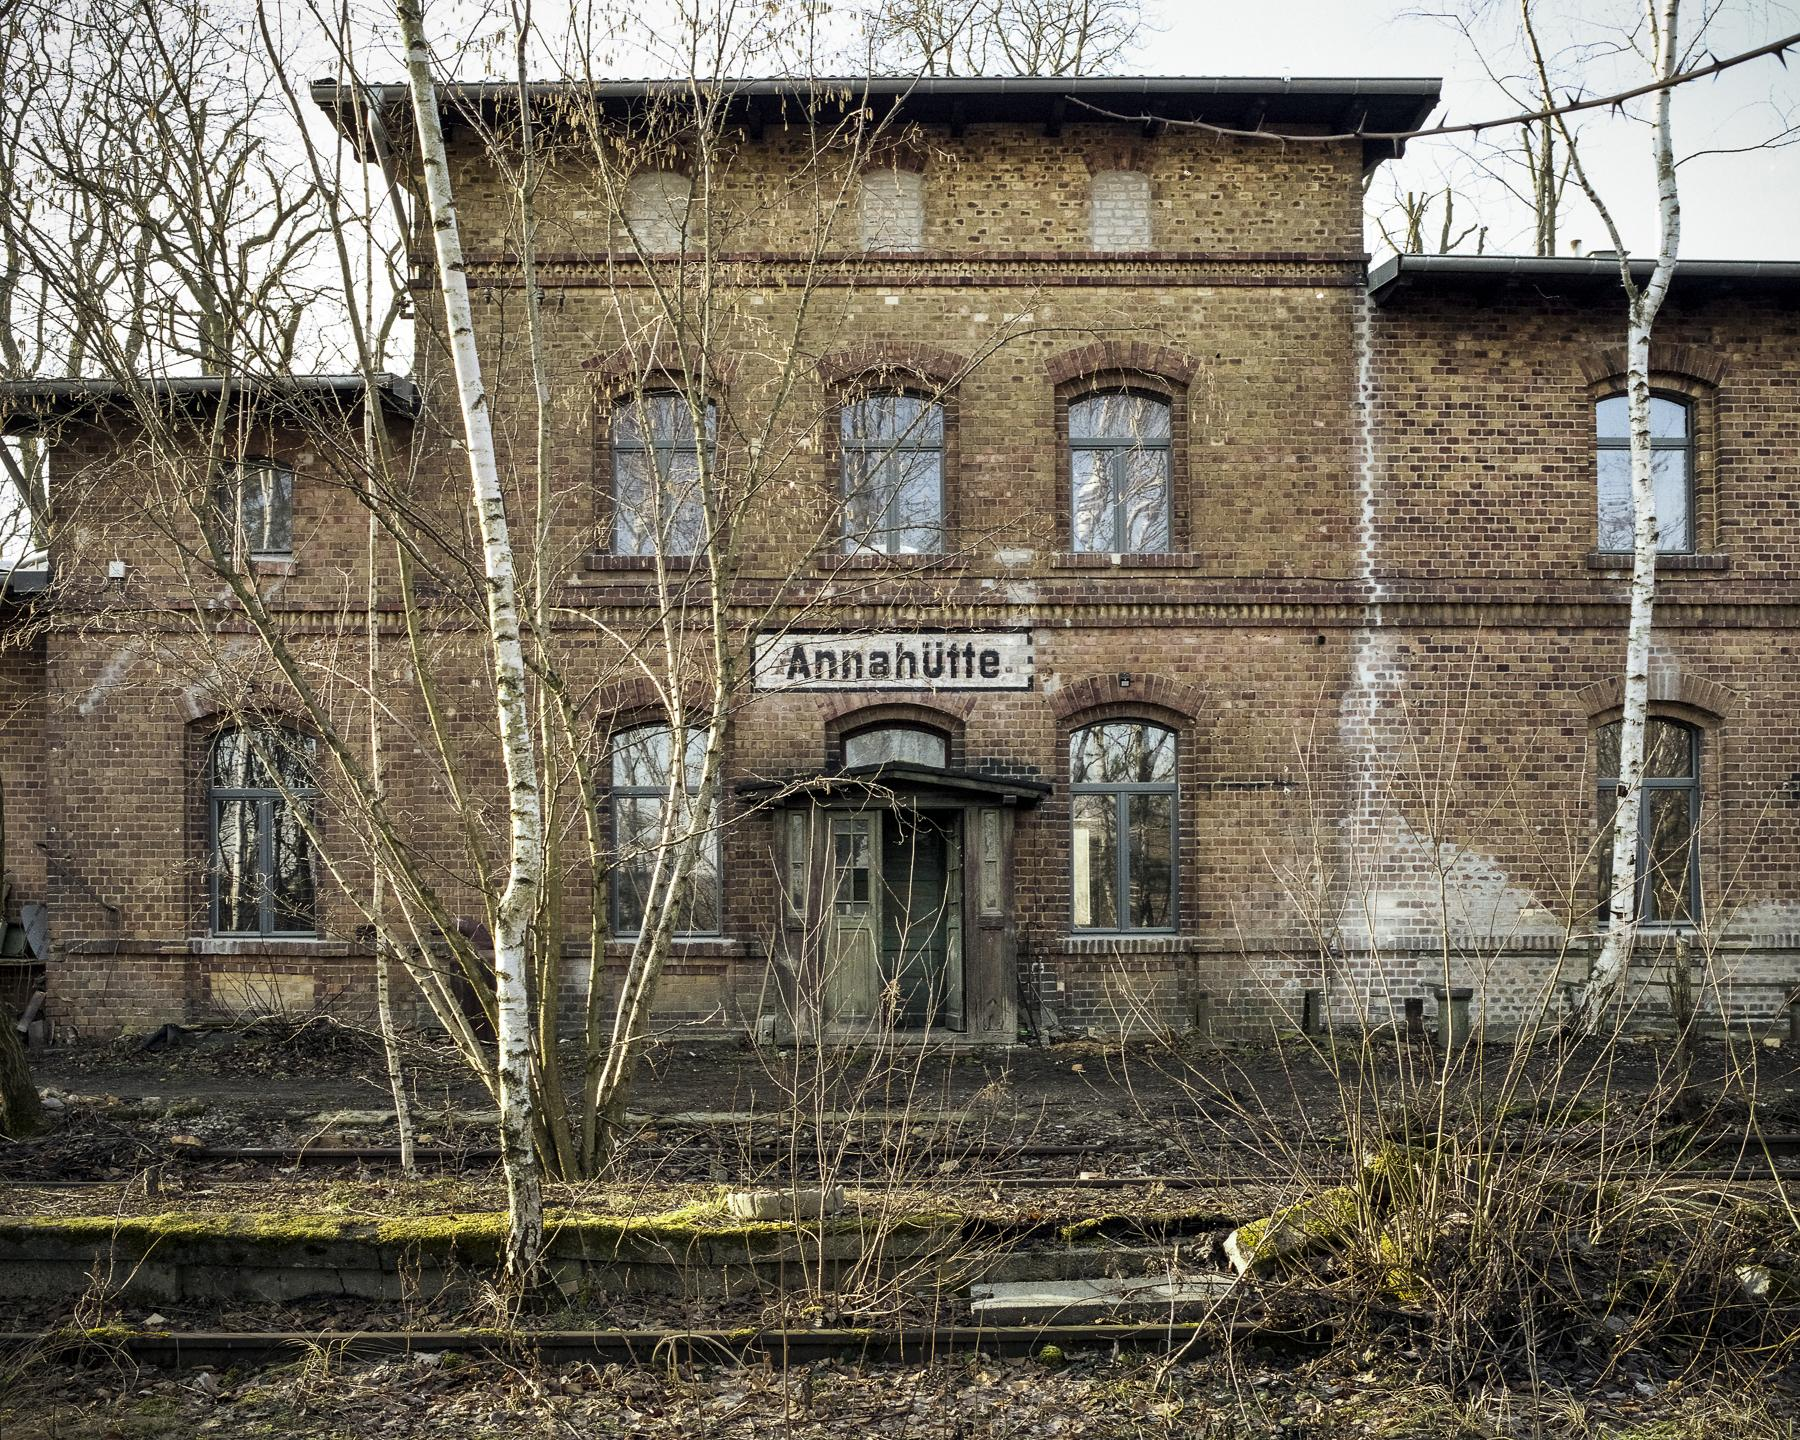 Facade of the main building next to the abandoned platform and rail lines.